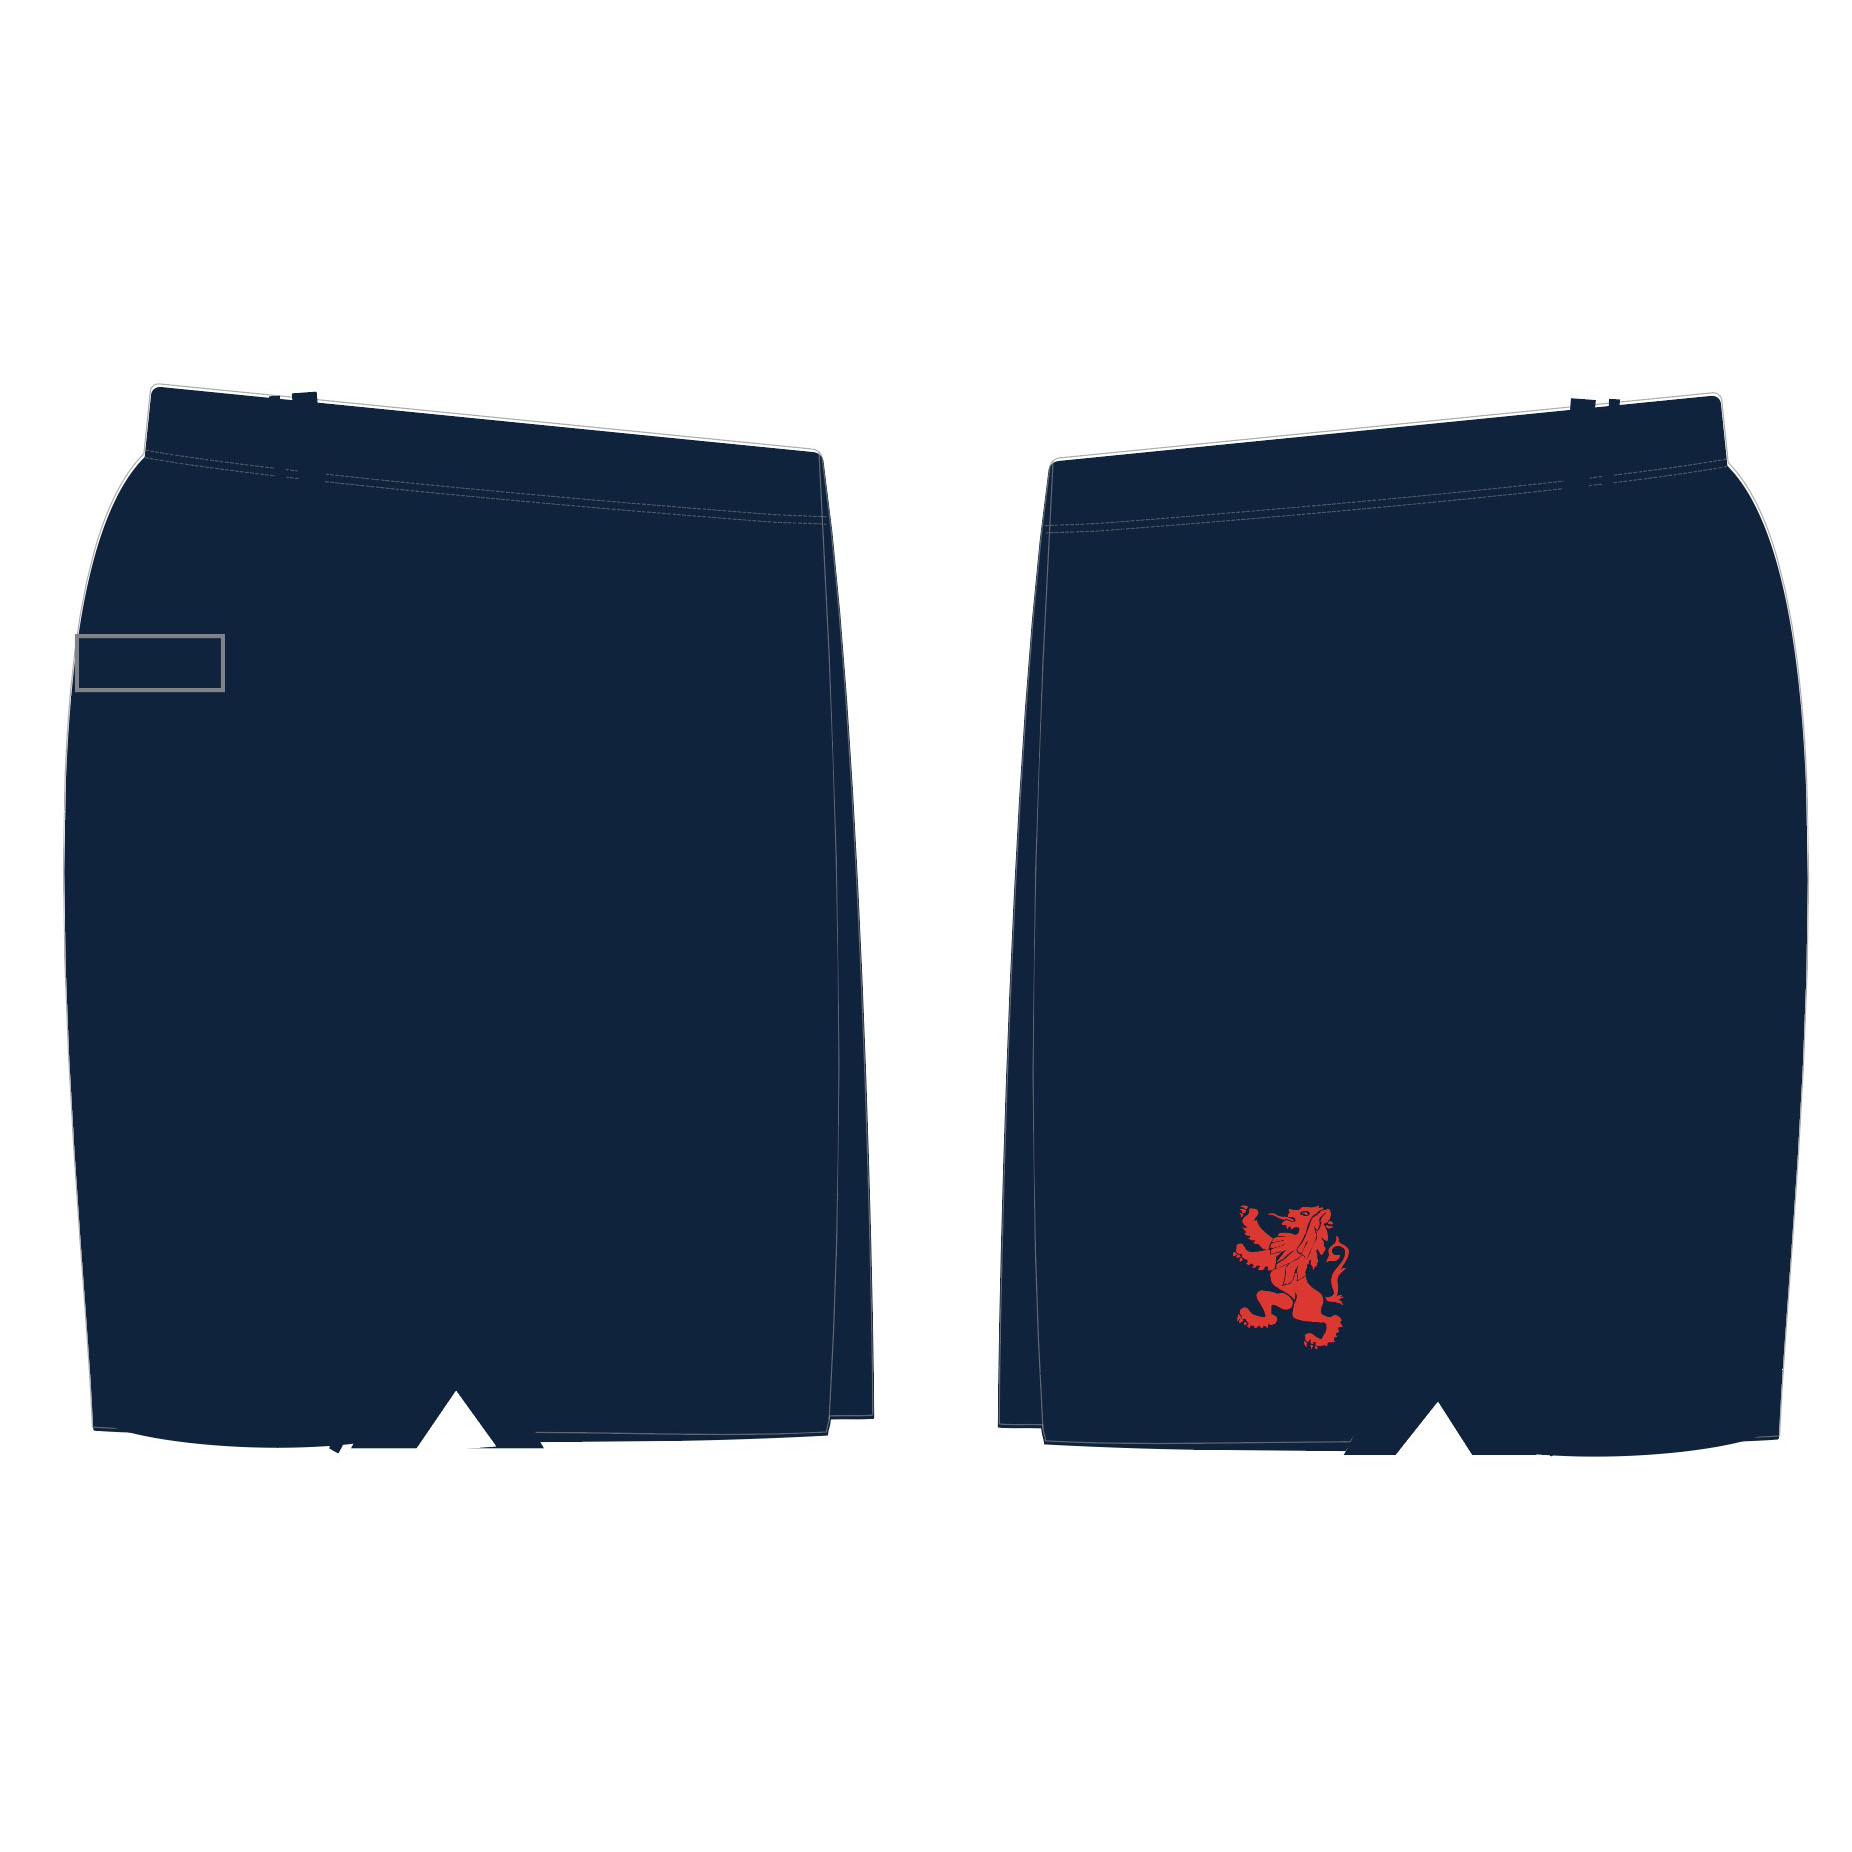 SOCFC Running Shorts